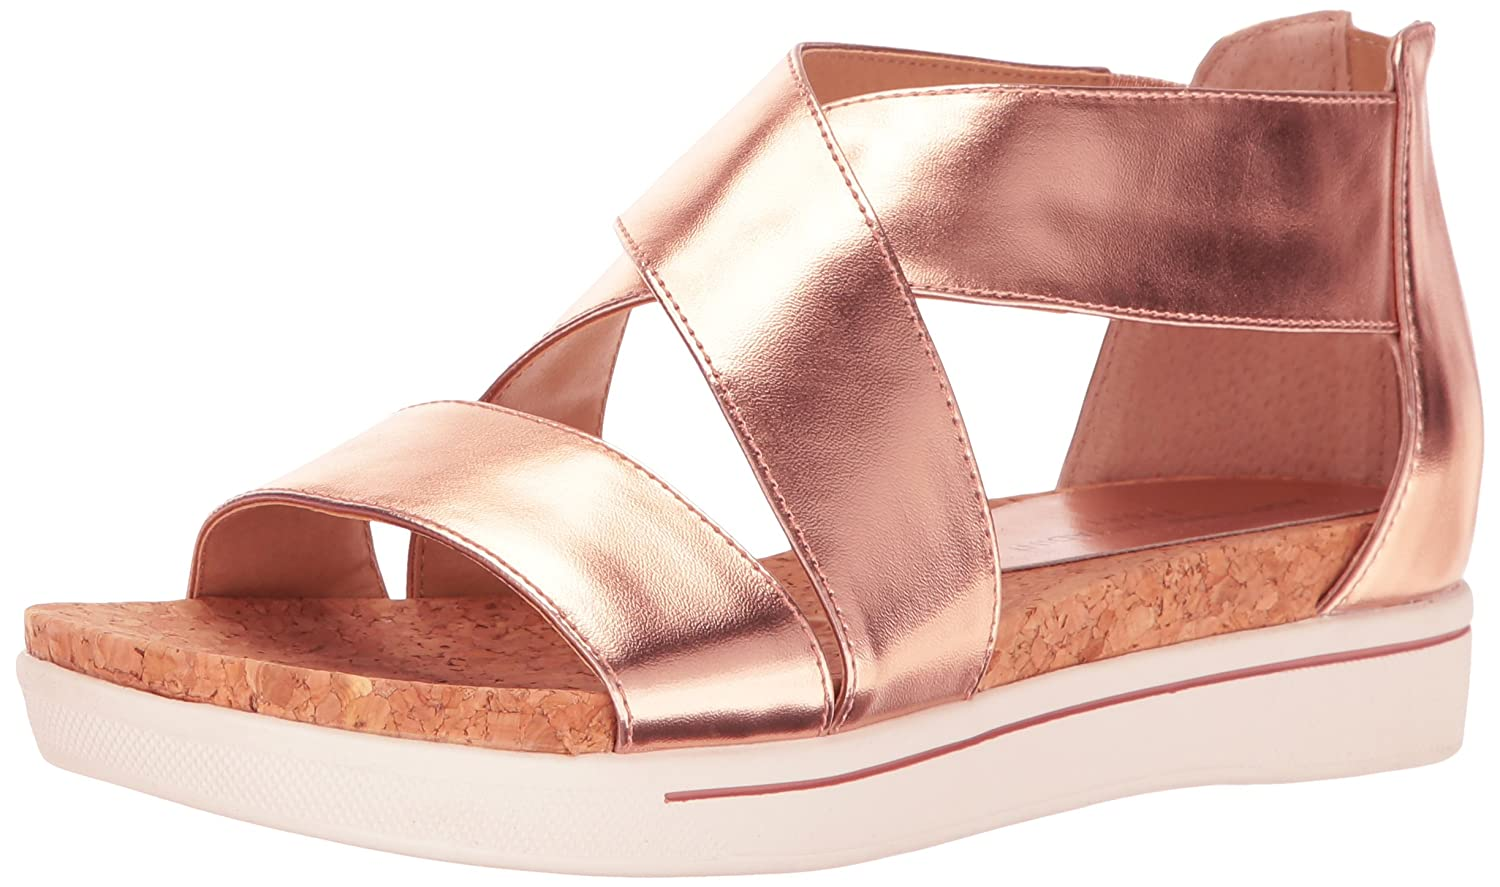 ADRIENNE VITTADINI Footwear Women's Claud Sandal B01N1S9R7M 11 B(M) US|Rose Gold/Metallic